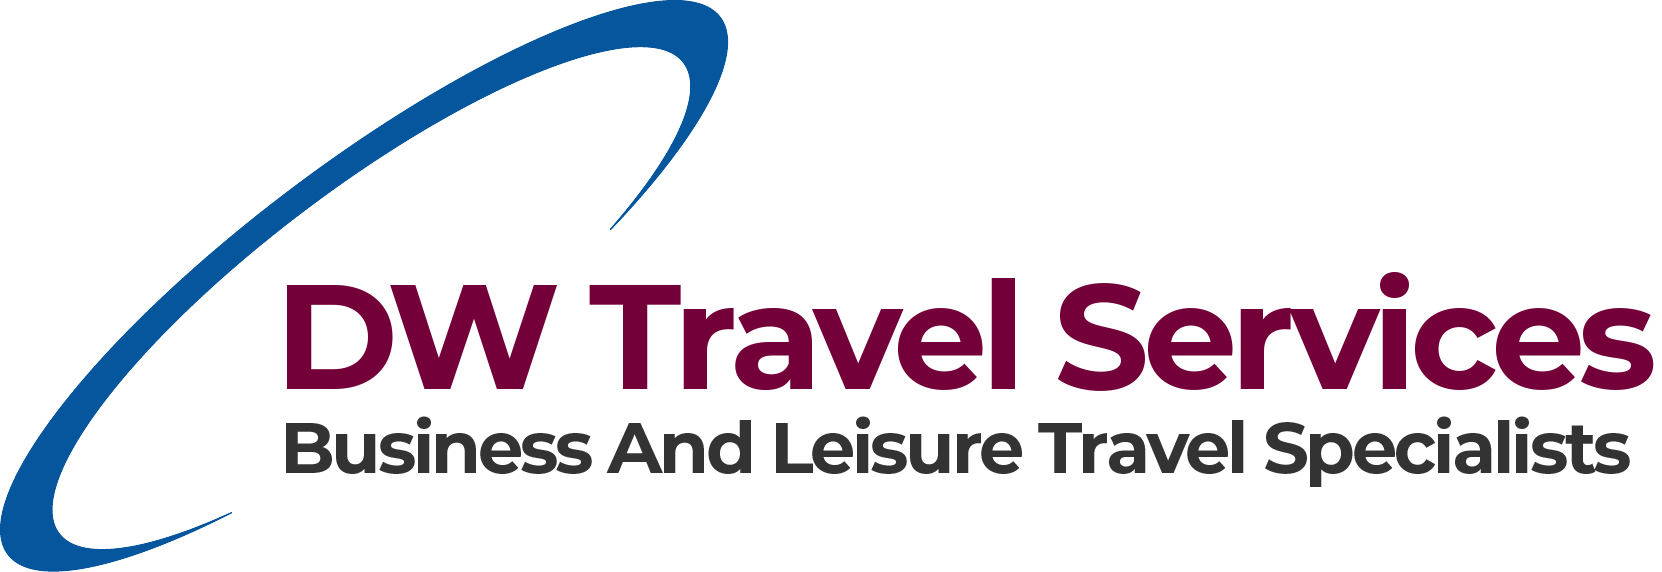 DW Travel Services logo